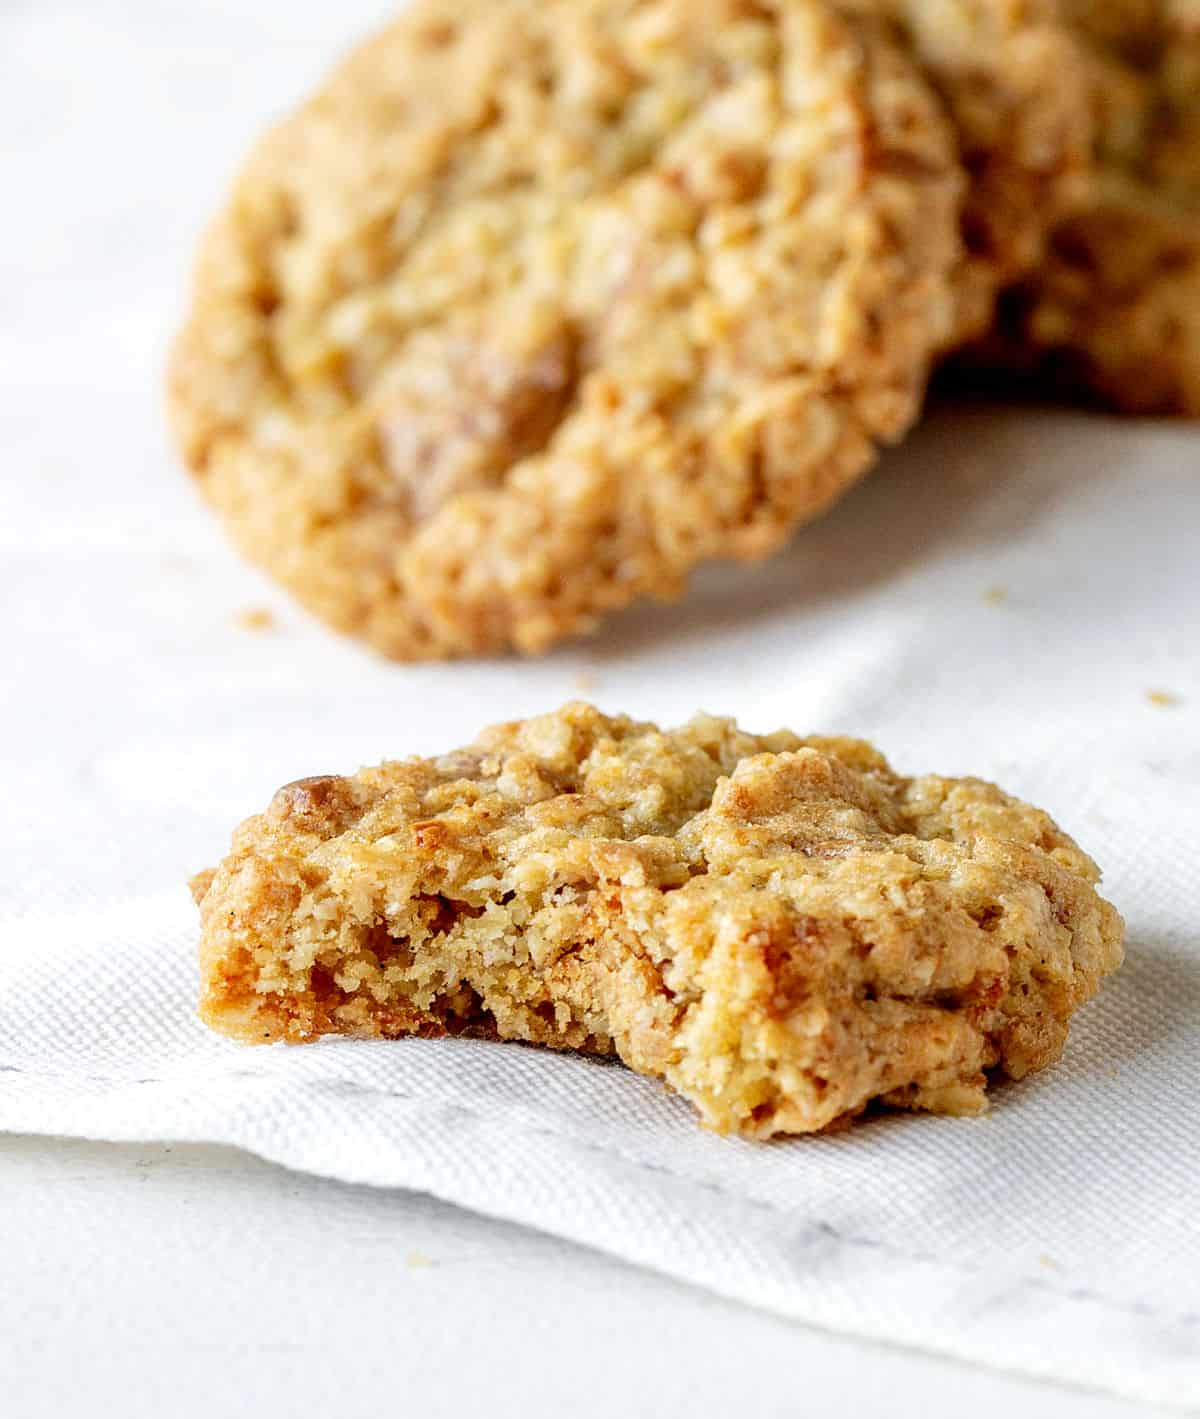 A bitten oatmeal cookie on a white cloth and several others in background